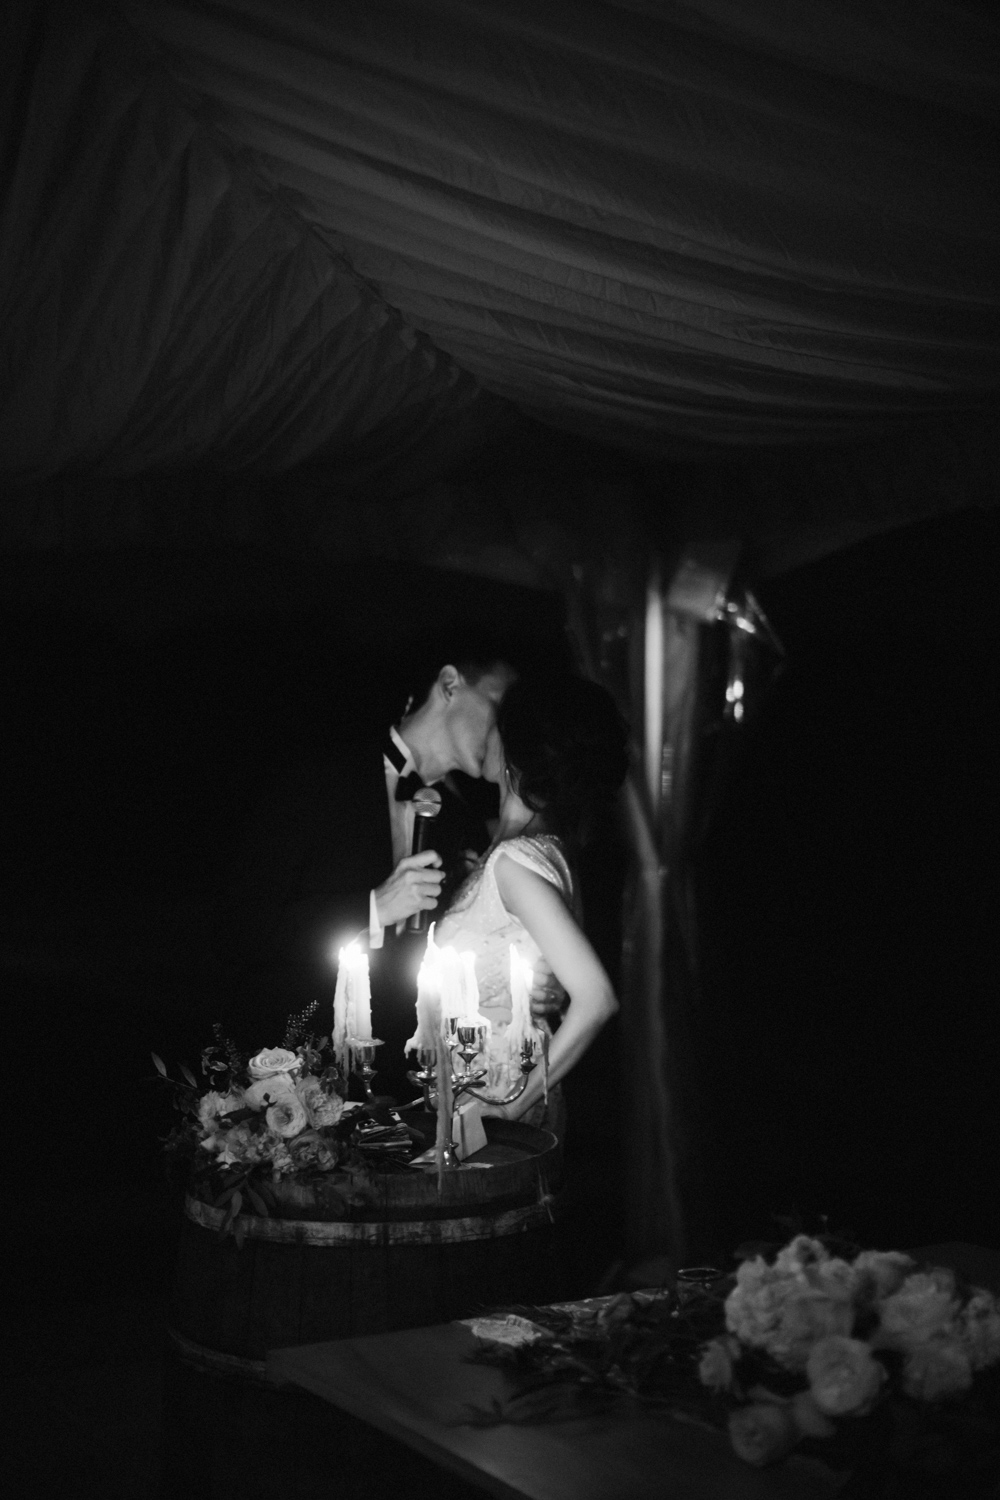 Romantic mid-speech kiss by candlelight